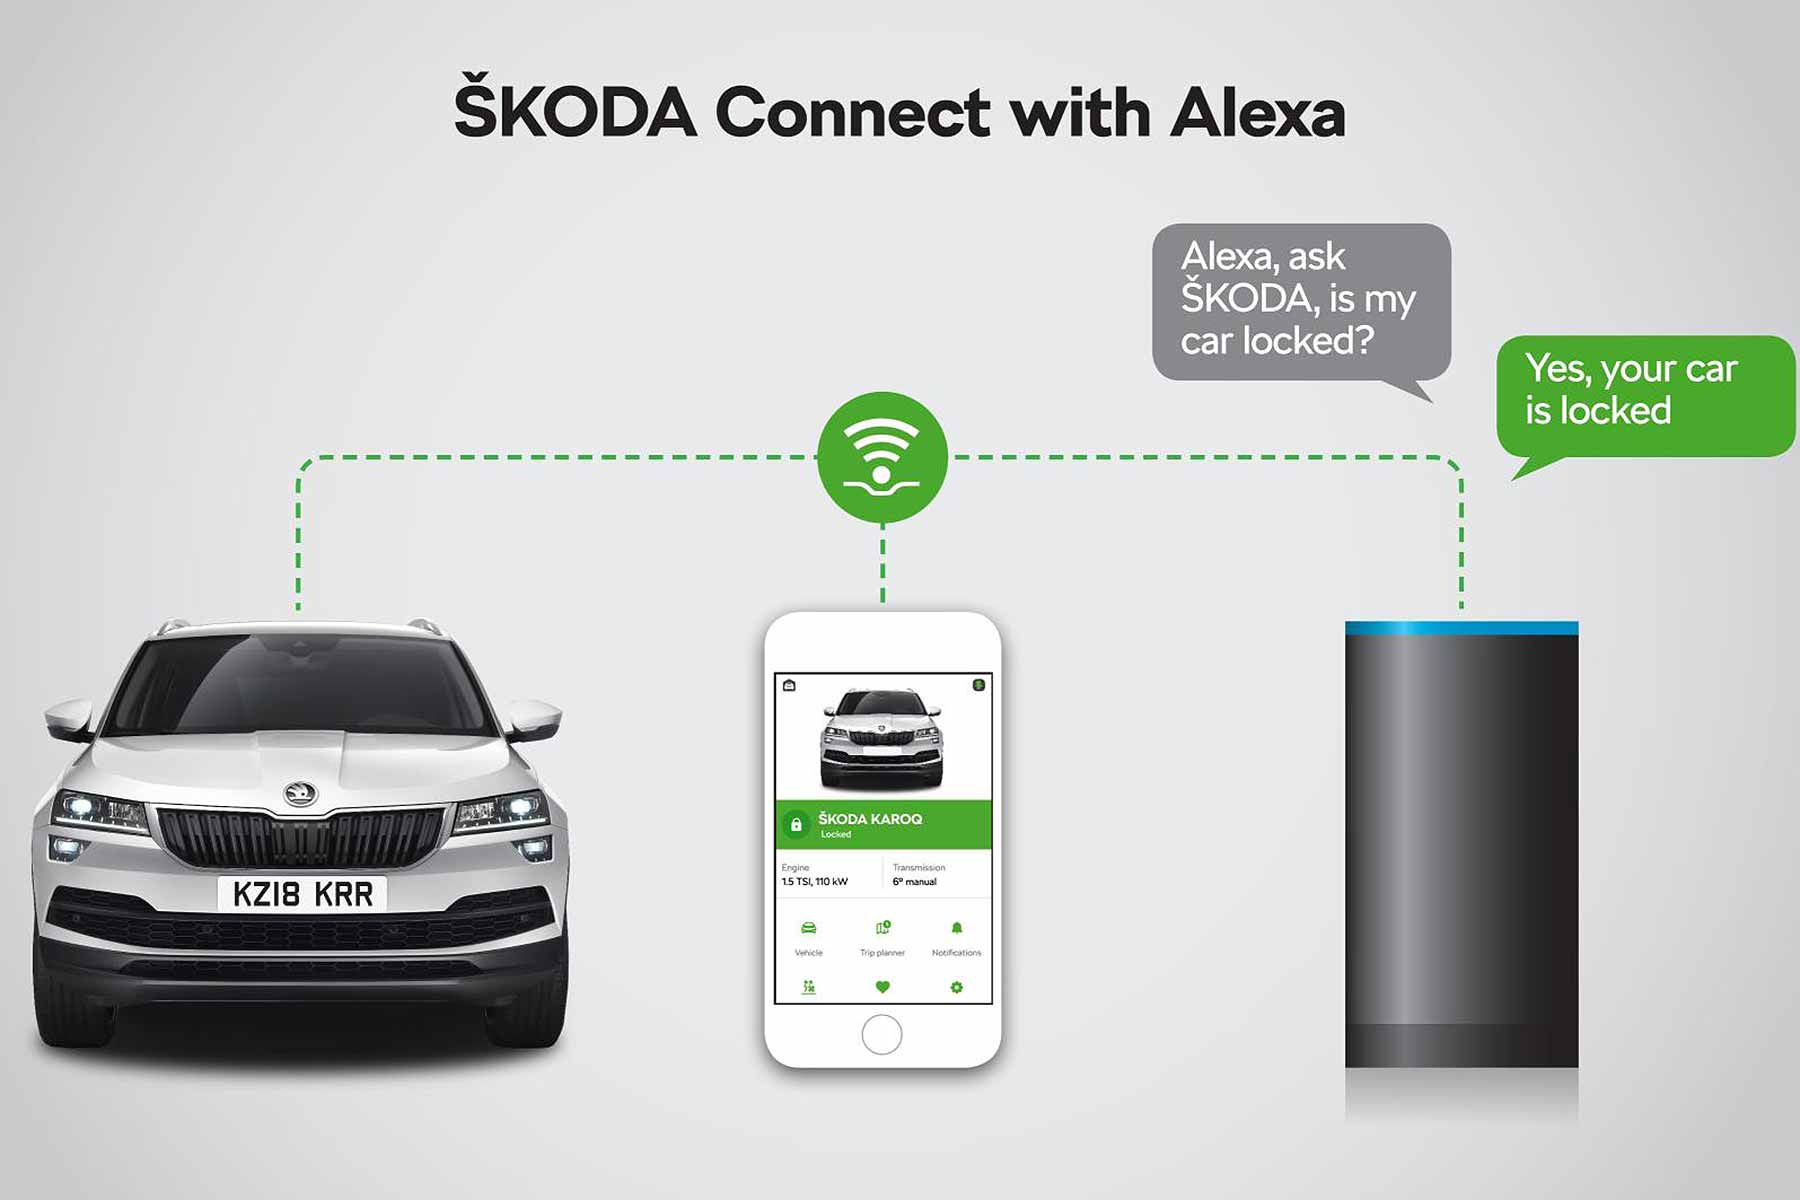 skoda connect app now compatible with amazon alexa motoring research. Black Bedroom Furniture Sets. Home Design Ideas